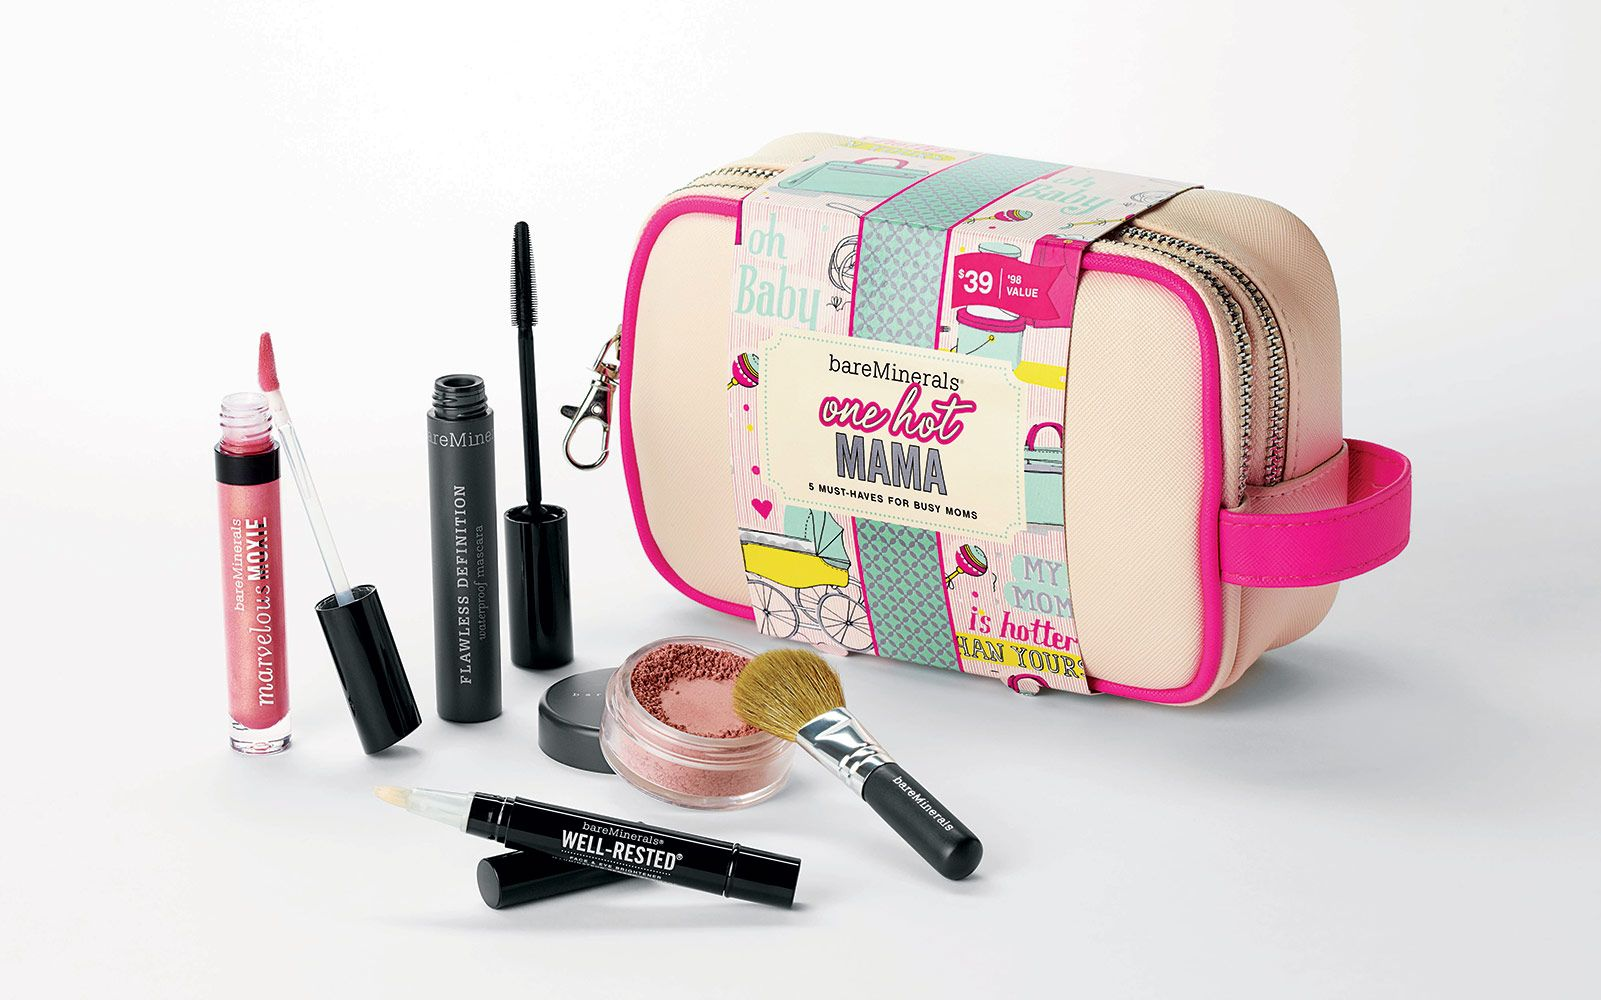 BareMinerals http://parade.condenast.com/285983/jennytzeses/16-gifts-for-the-fashionable-mom/